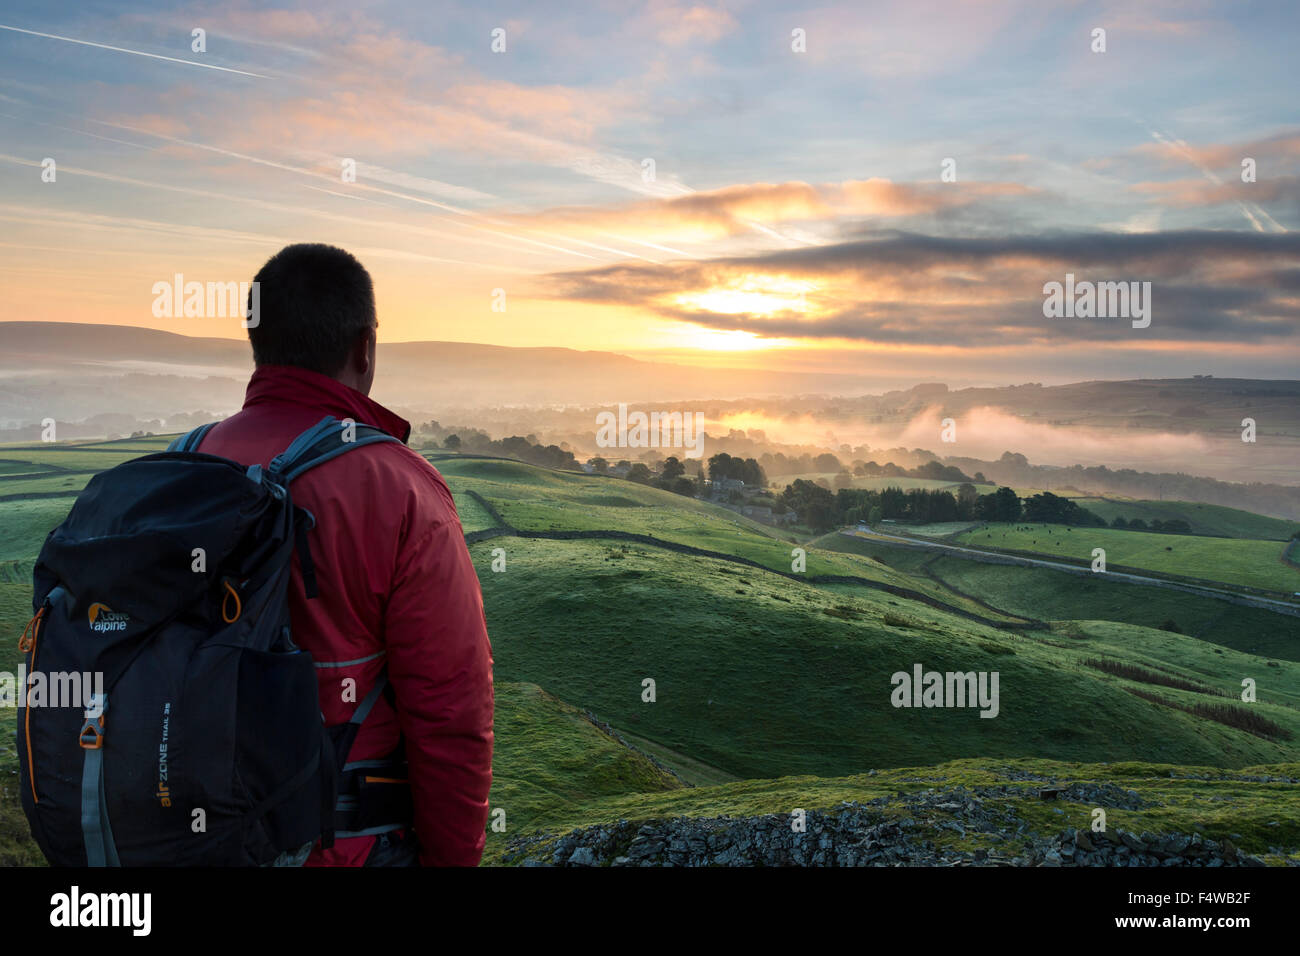 Hiker Enjoying the View Across a Misty Teesdale at Sunrise From Kirkcarrion, Lunedale, Teesdale County Durham UK - Stock Image